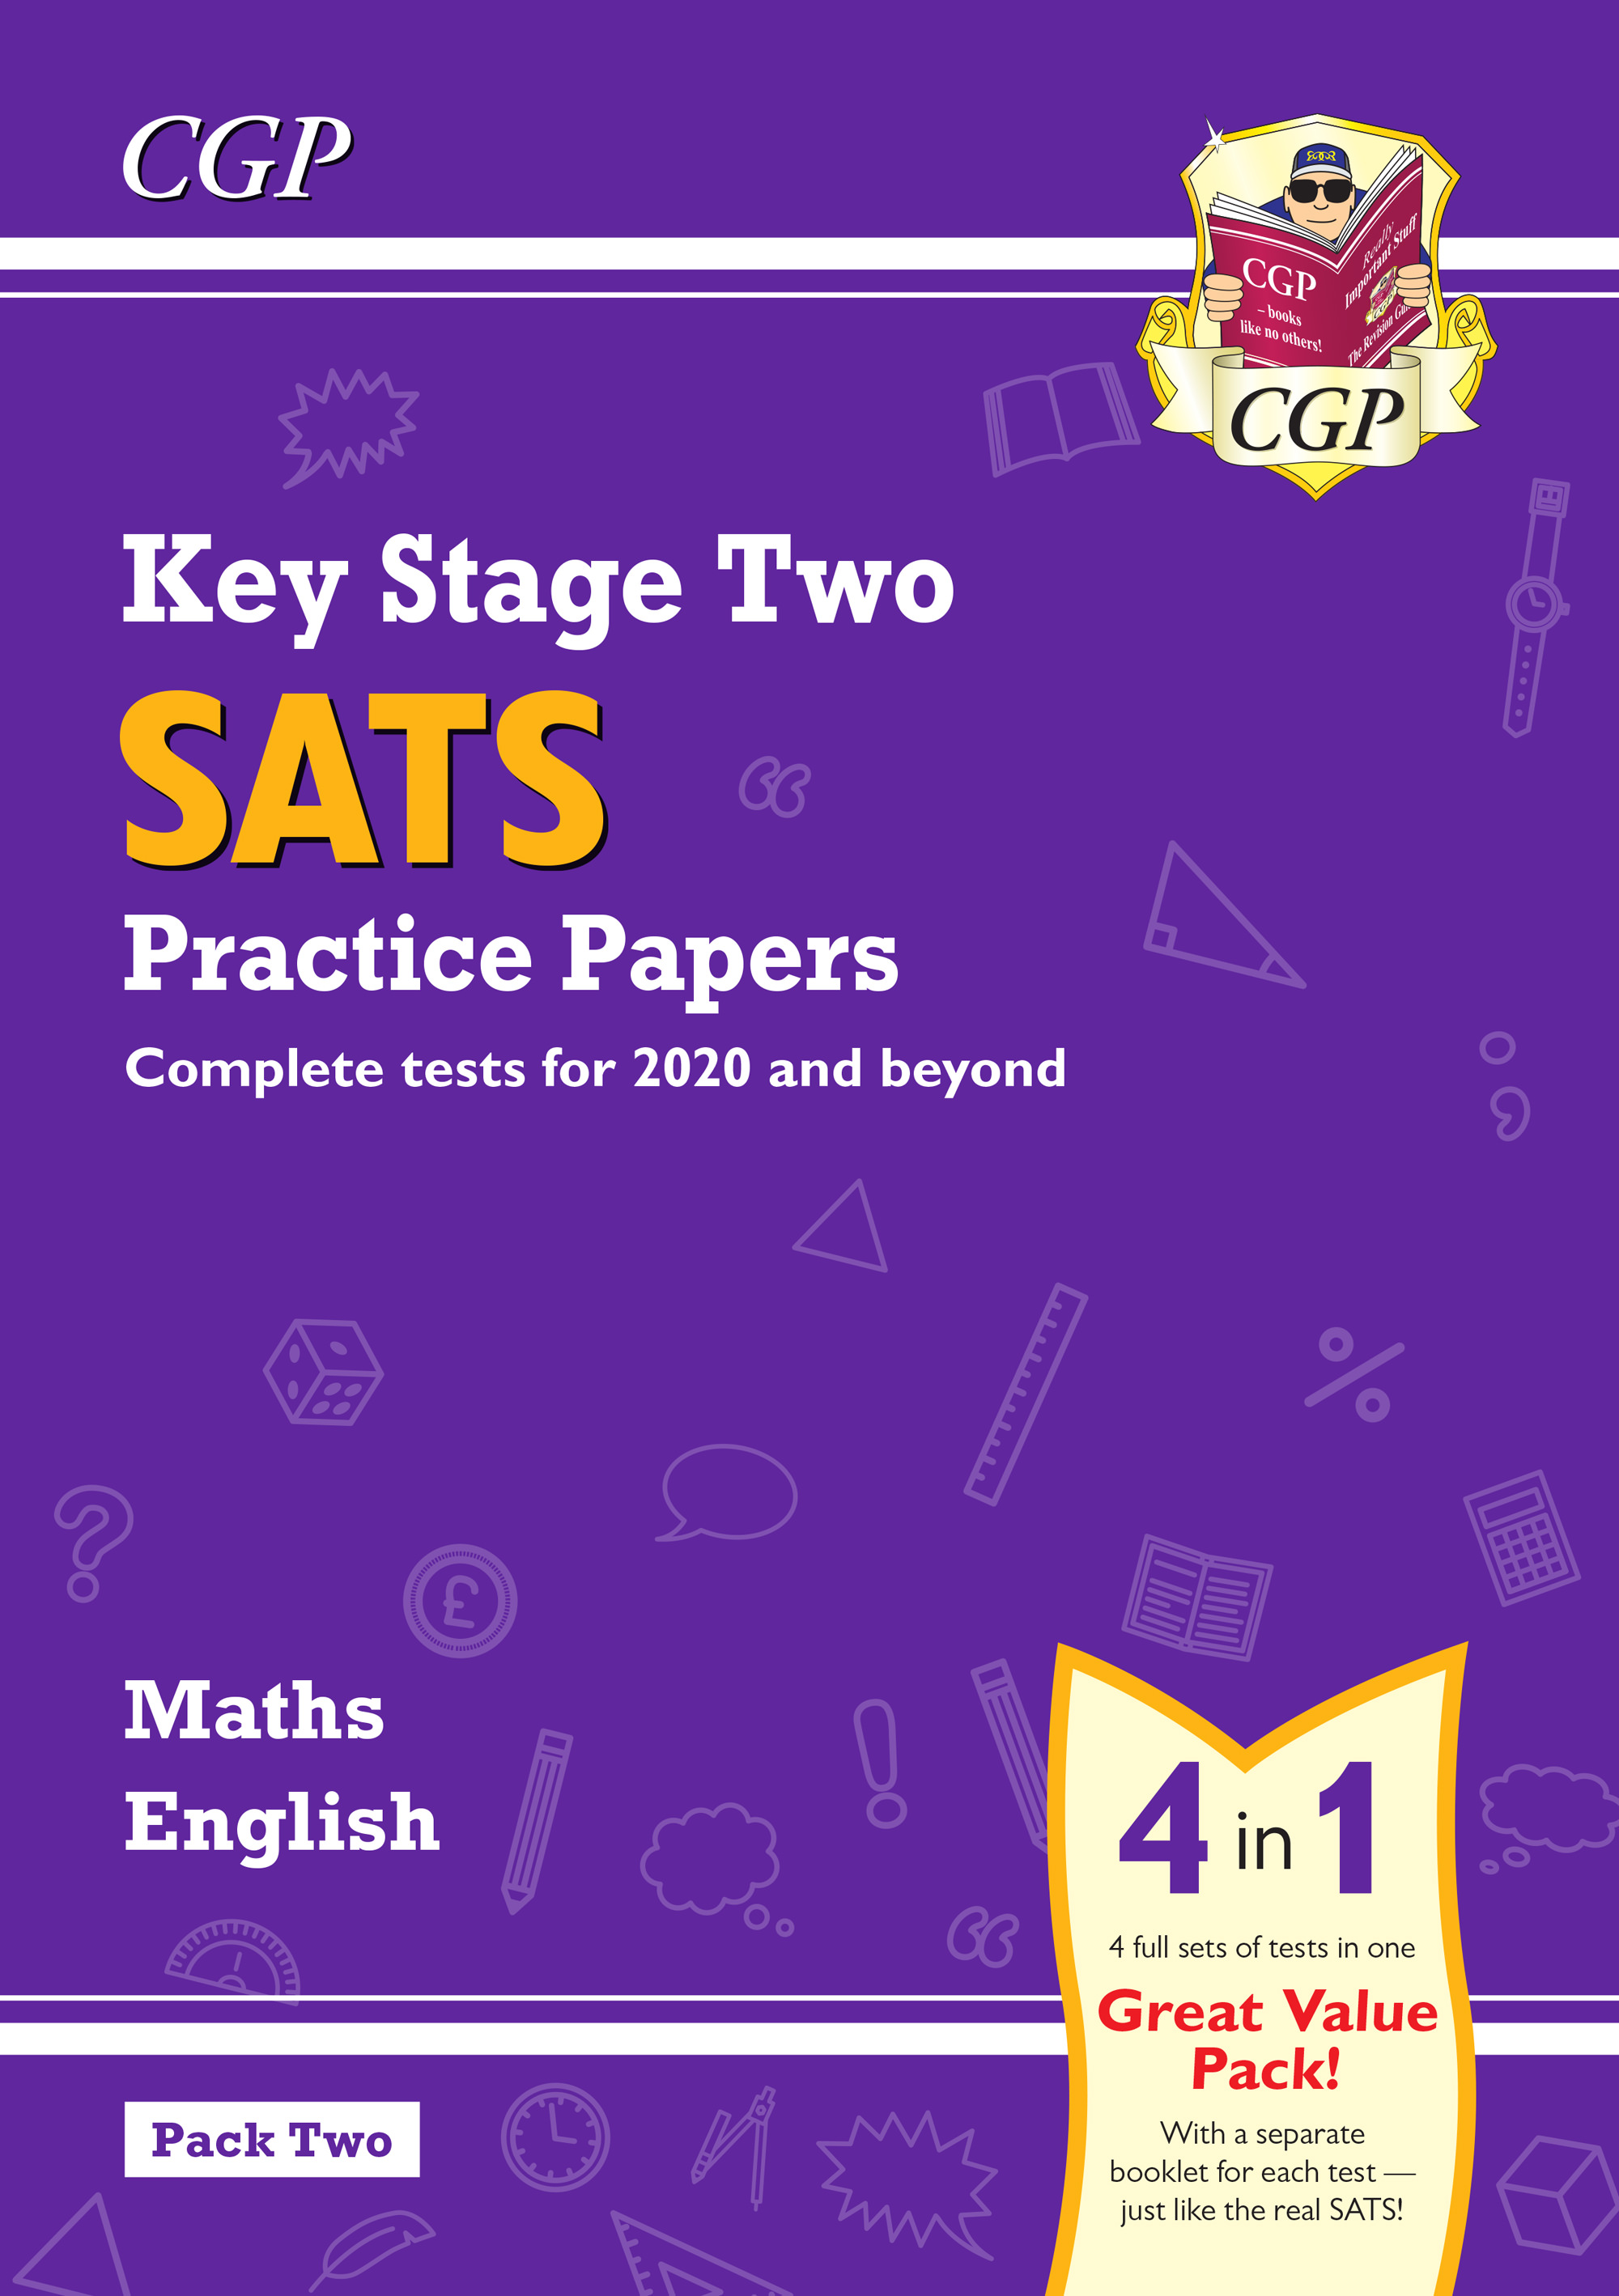 MEB223 - New KS2 Maths and English SATS Practice Papers Pack (for the 2020 tests) - Pack 2